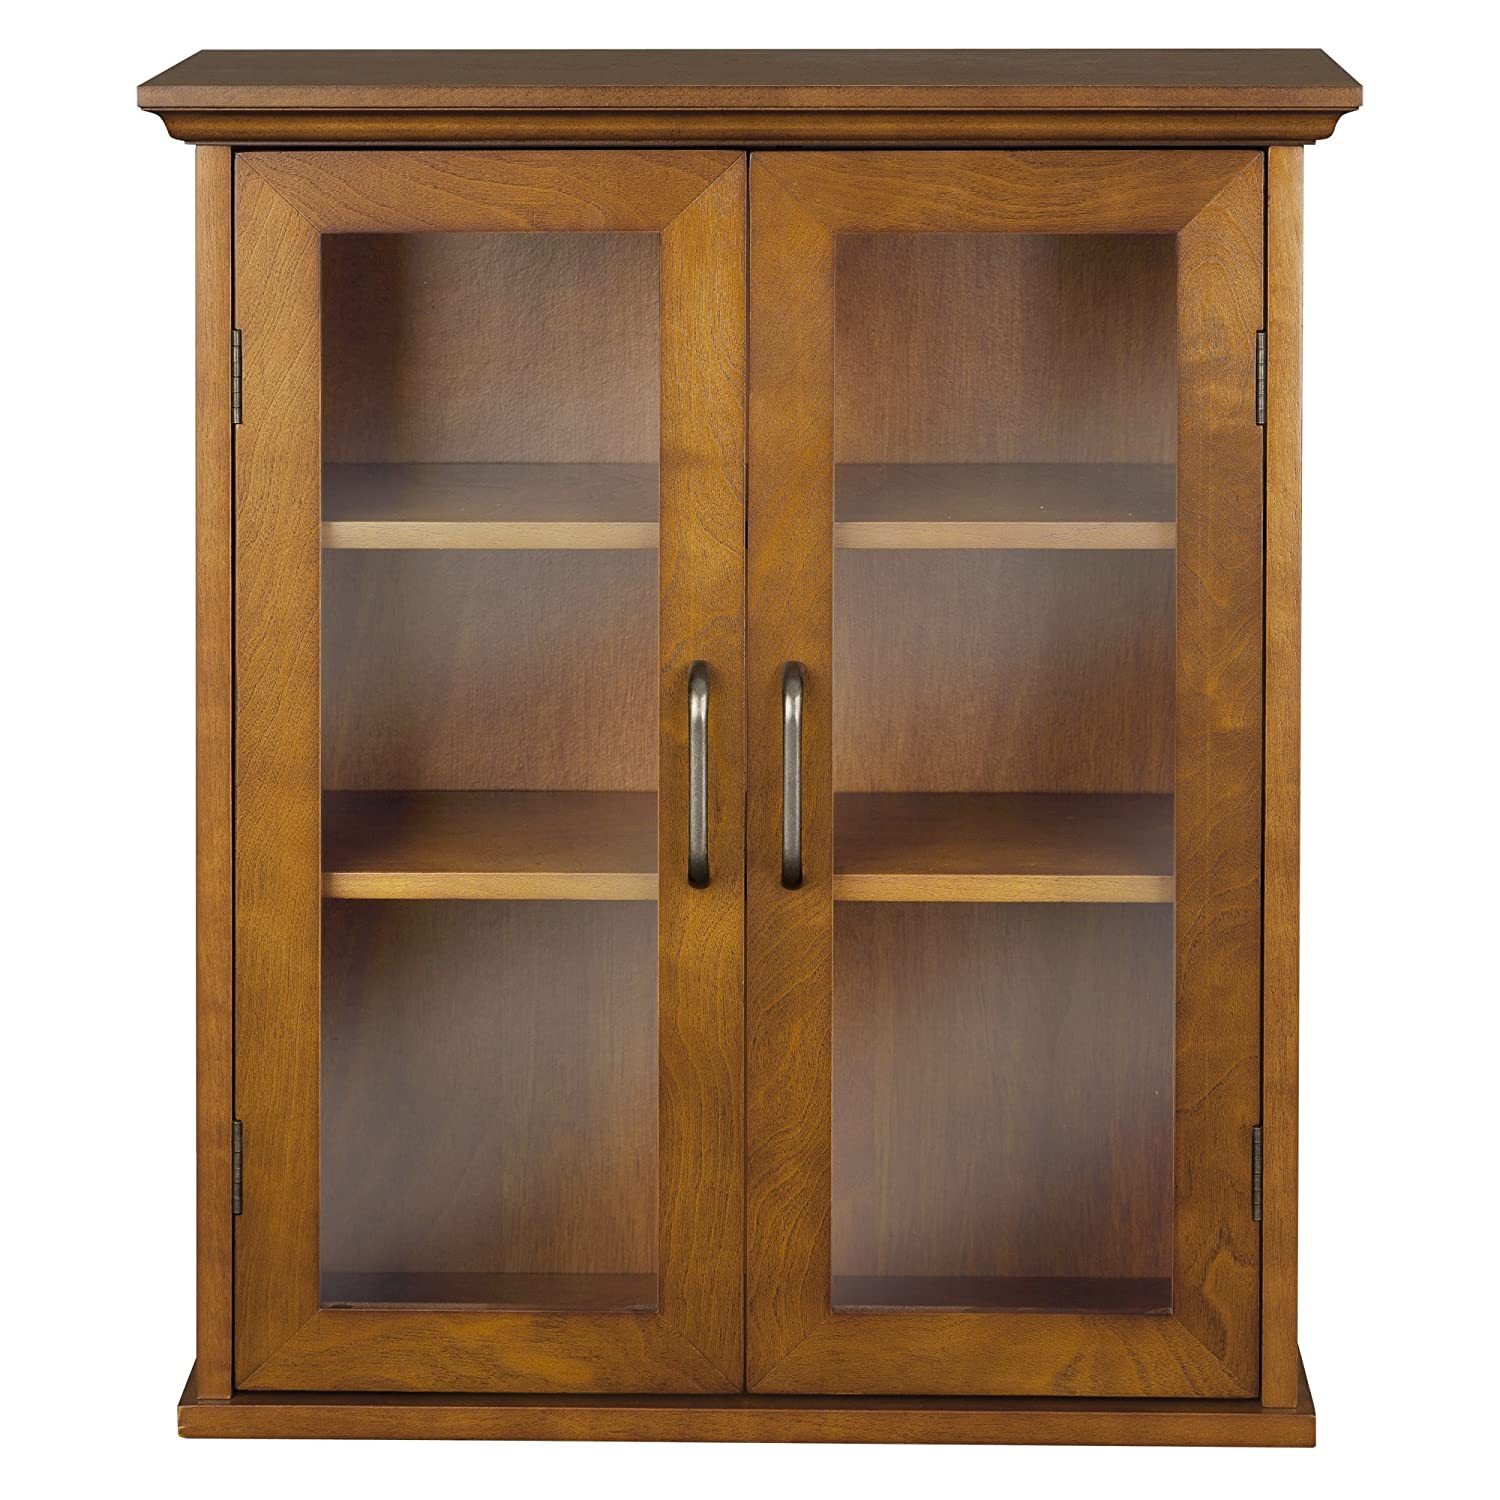 Elegant Home Fashion Anna Wall Cabinet with 2-Door ELG-5401